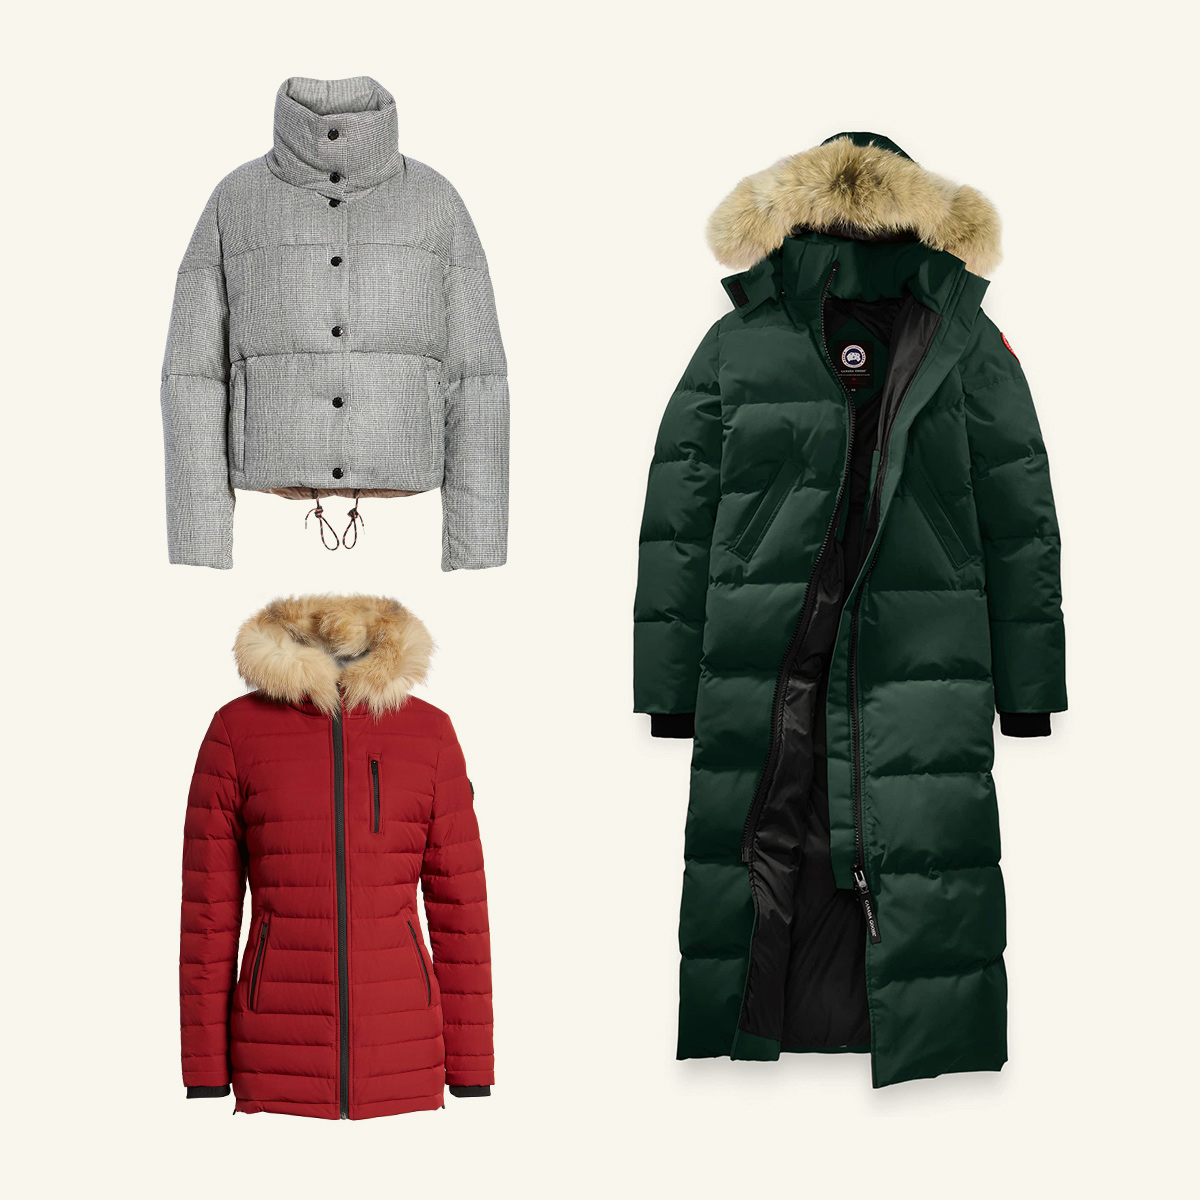 Three women's coats meant to be worn in severe winter weather.